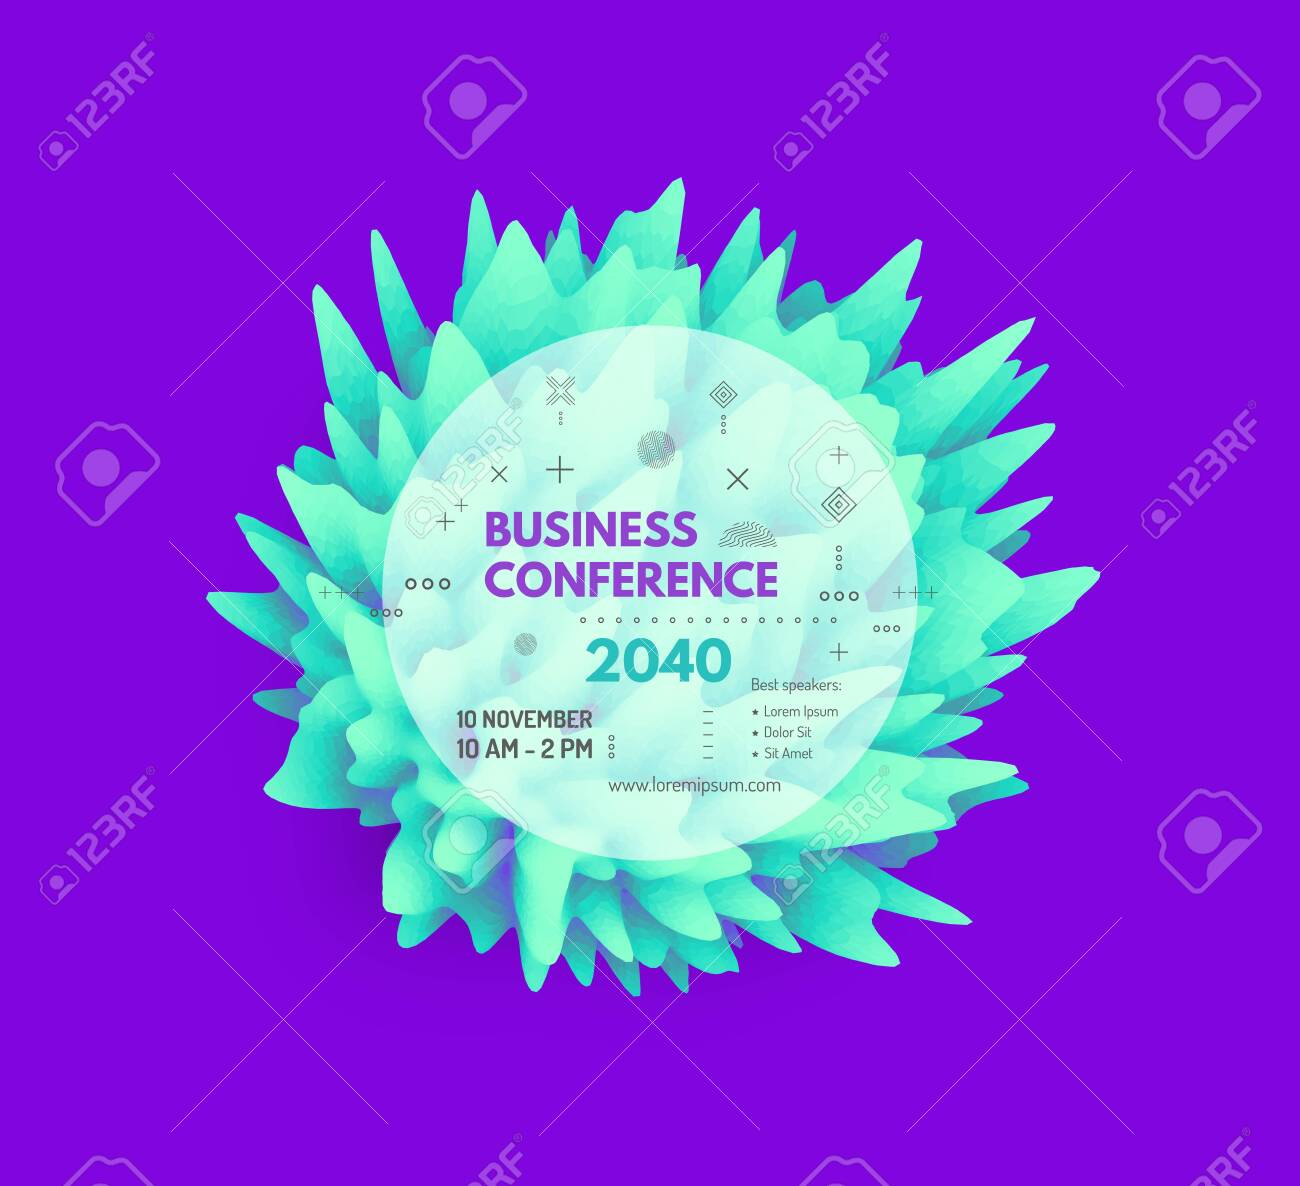 Business Event Invitation Template Floral Art Can Be Used For